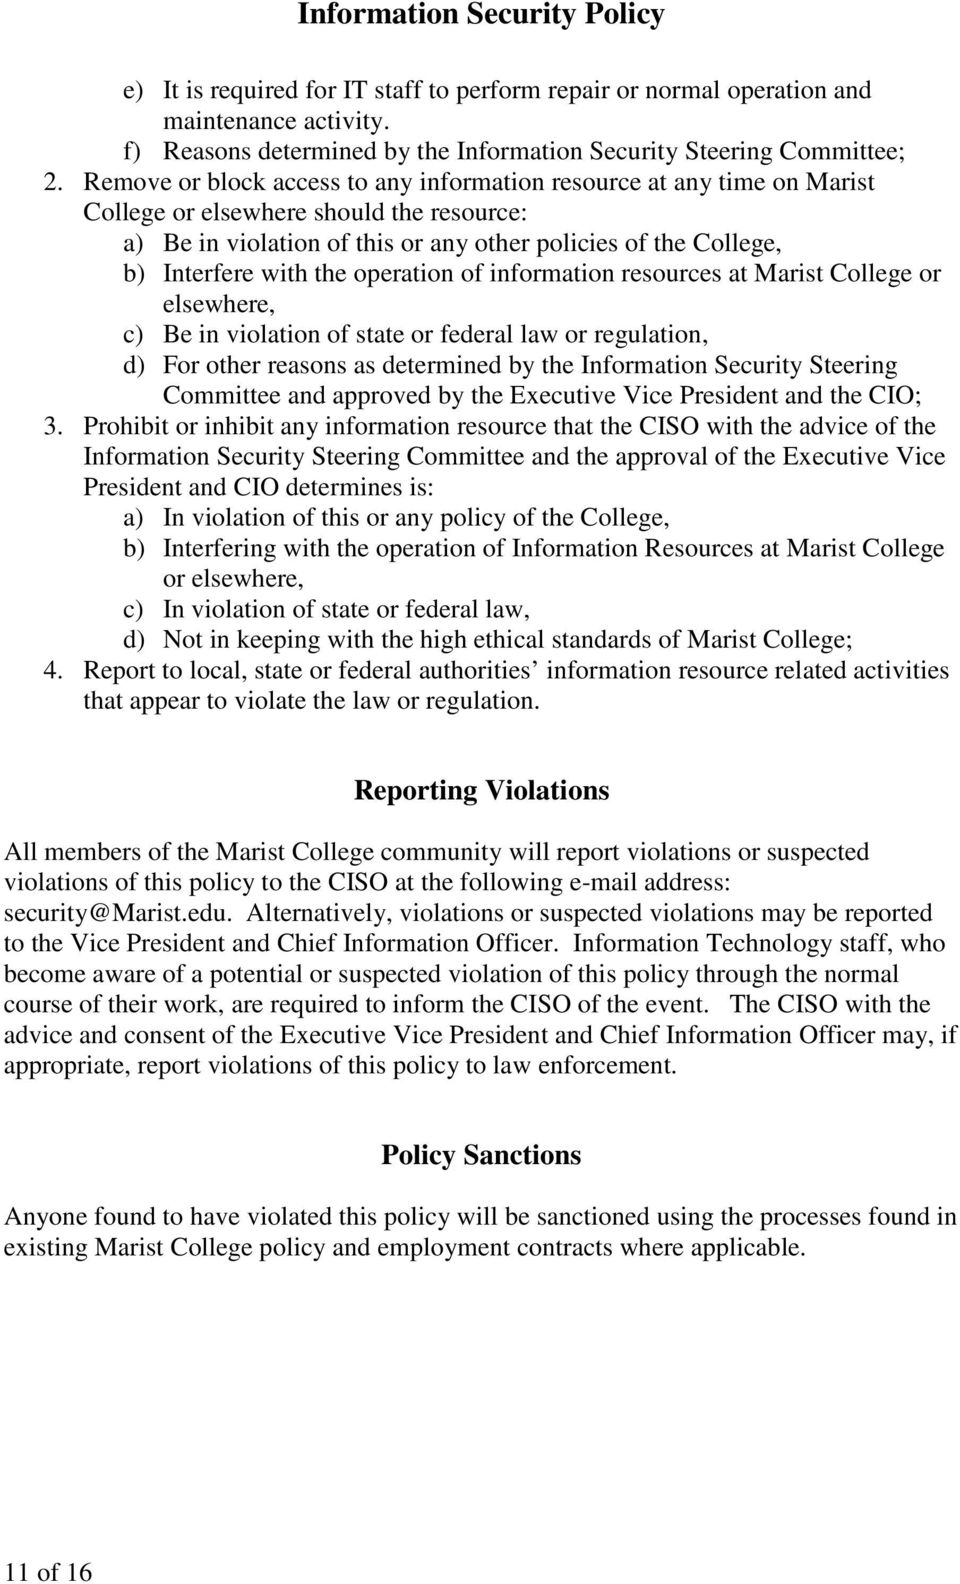 the operation of information resources at Marist College or elsewhere, c) Be in violation of state or federal law or regulation, d) For other reasons as determined by the Information Security